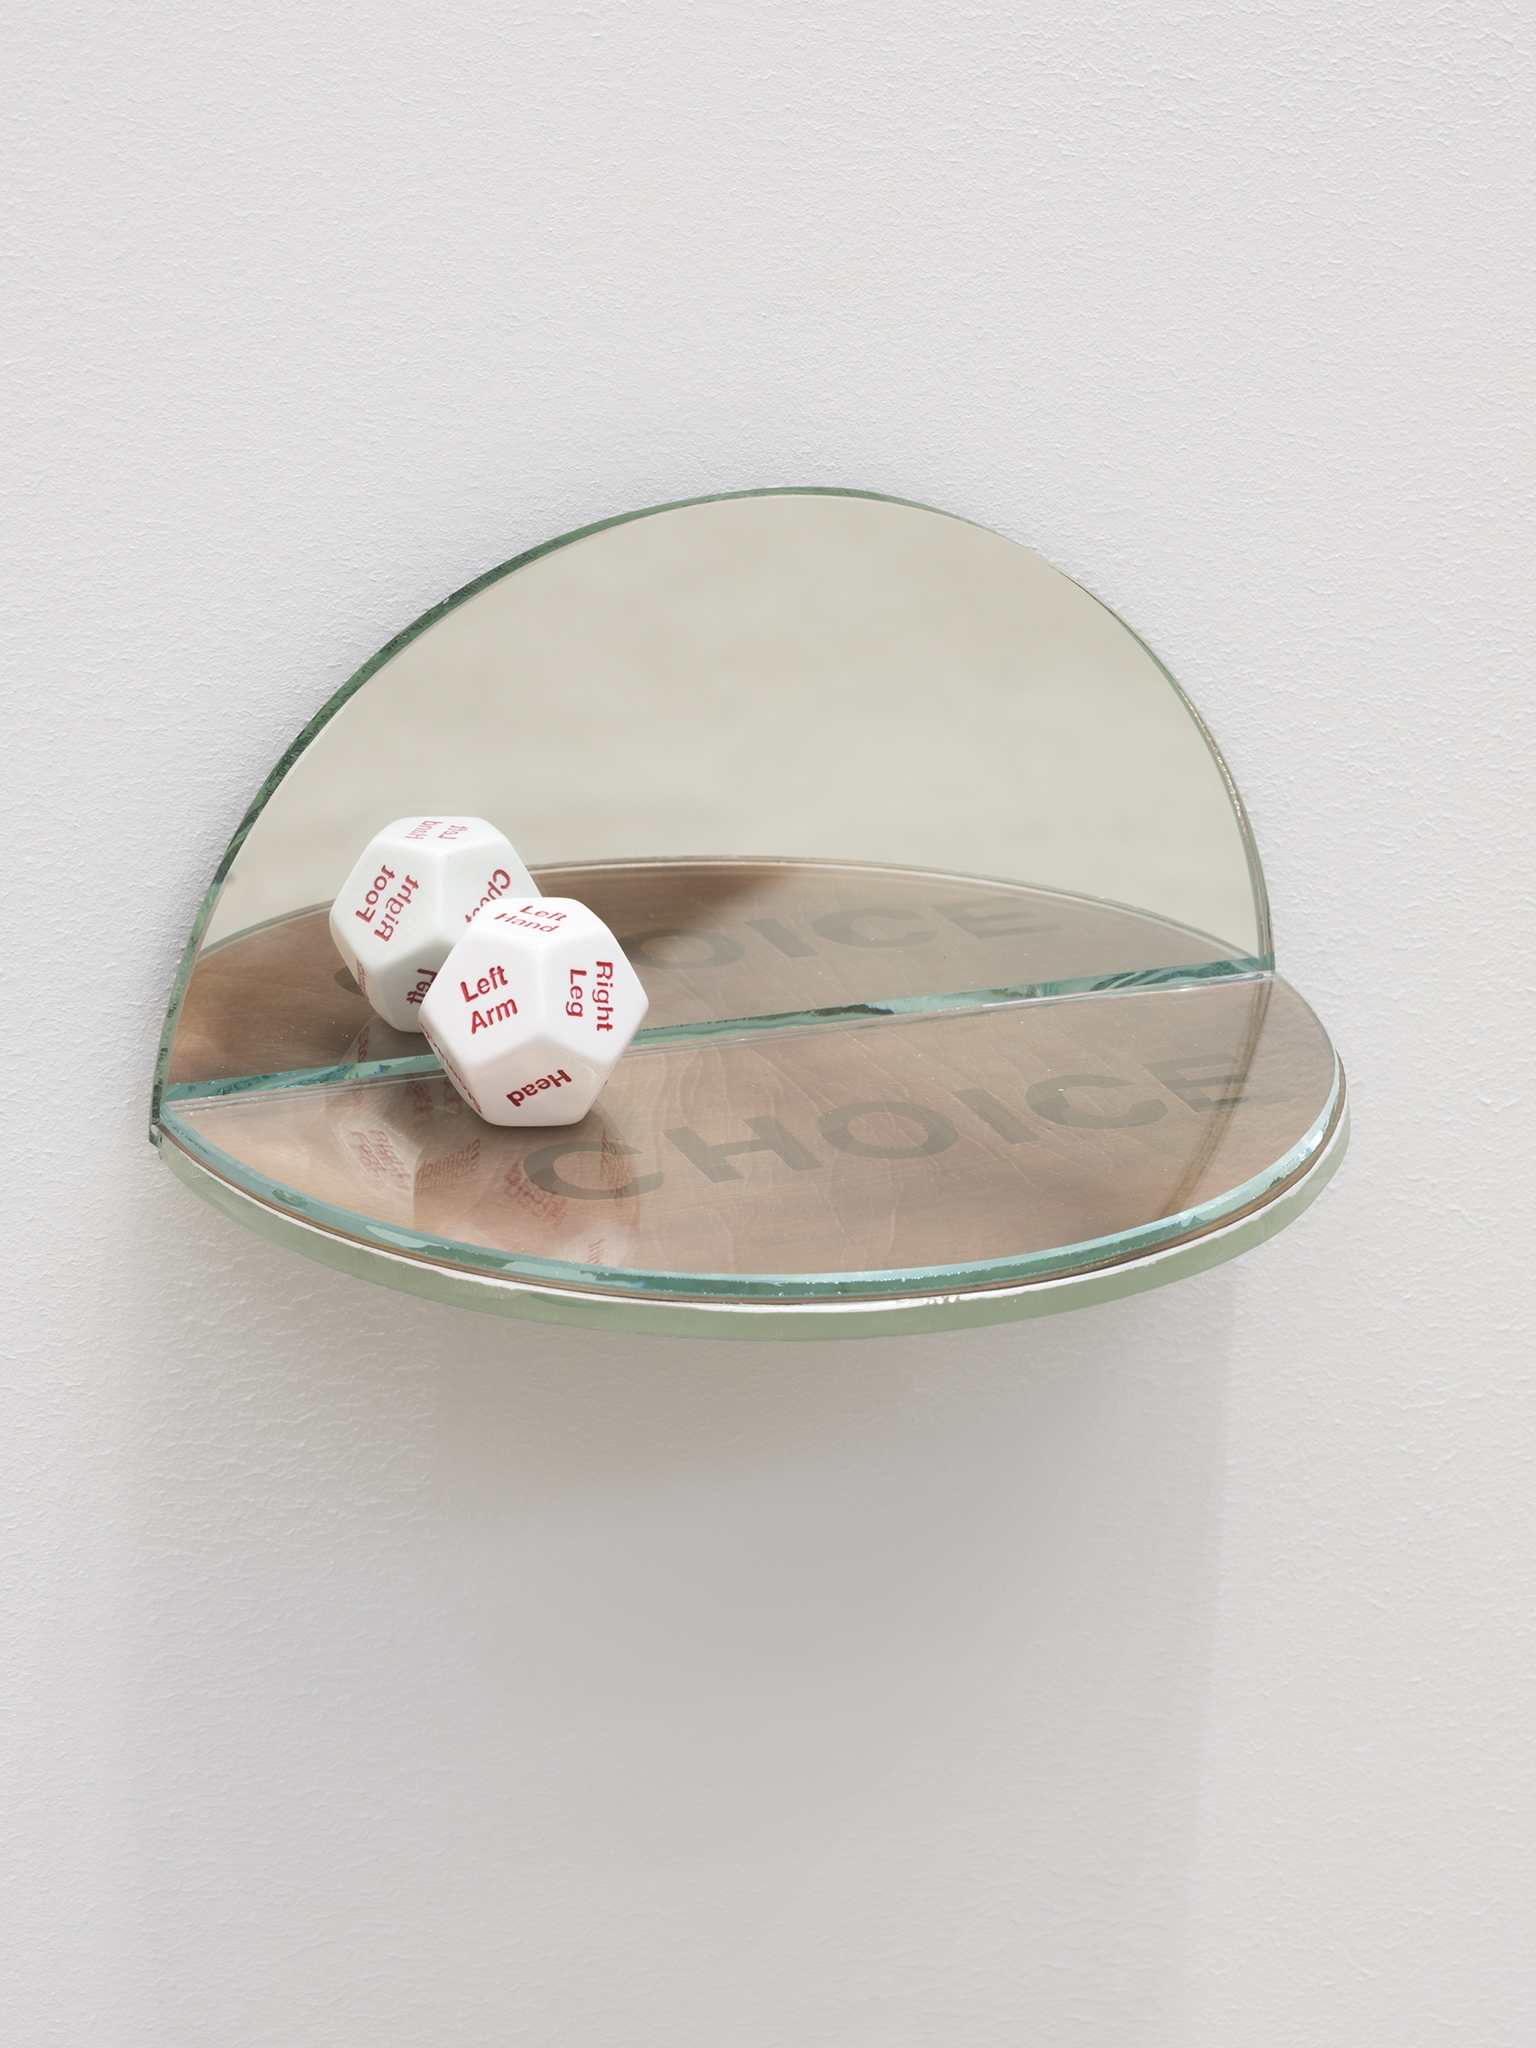 ​​​​Julia Feyrer, The Ambidextrous Universe: touching, 2018, mirror, liquid mirror, glass, fujiclear transparency, 12-sided die, 4 x 4 x 7 in. (9 x 9 x 18 cm)​​​ by